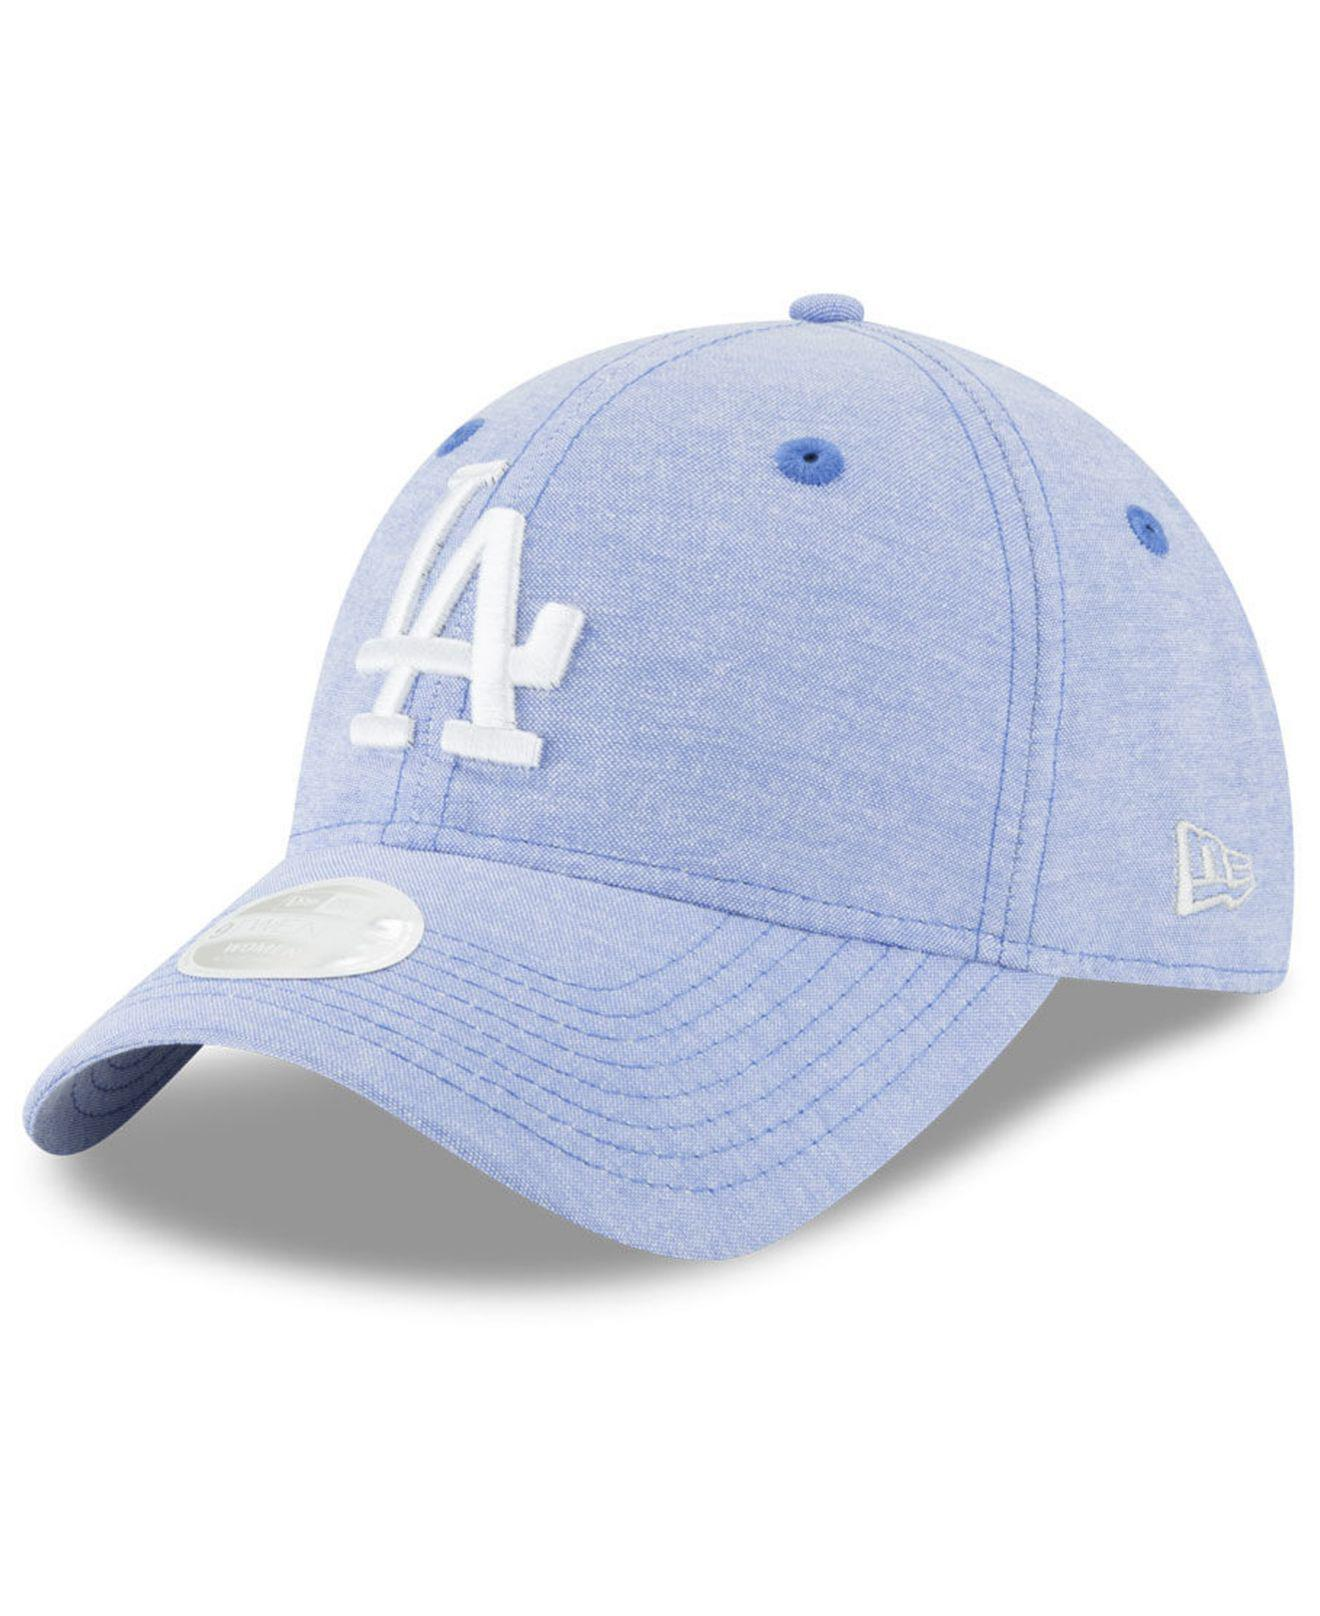 e0bfe5f04b5 ... clearance lyst ktz los angeles dodgers team linen 9twenty strapback cap  in blue b3b31 c72d9